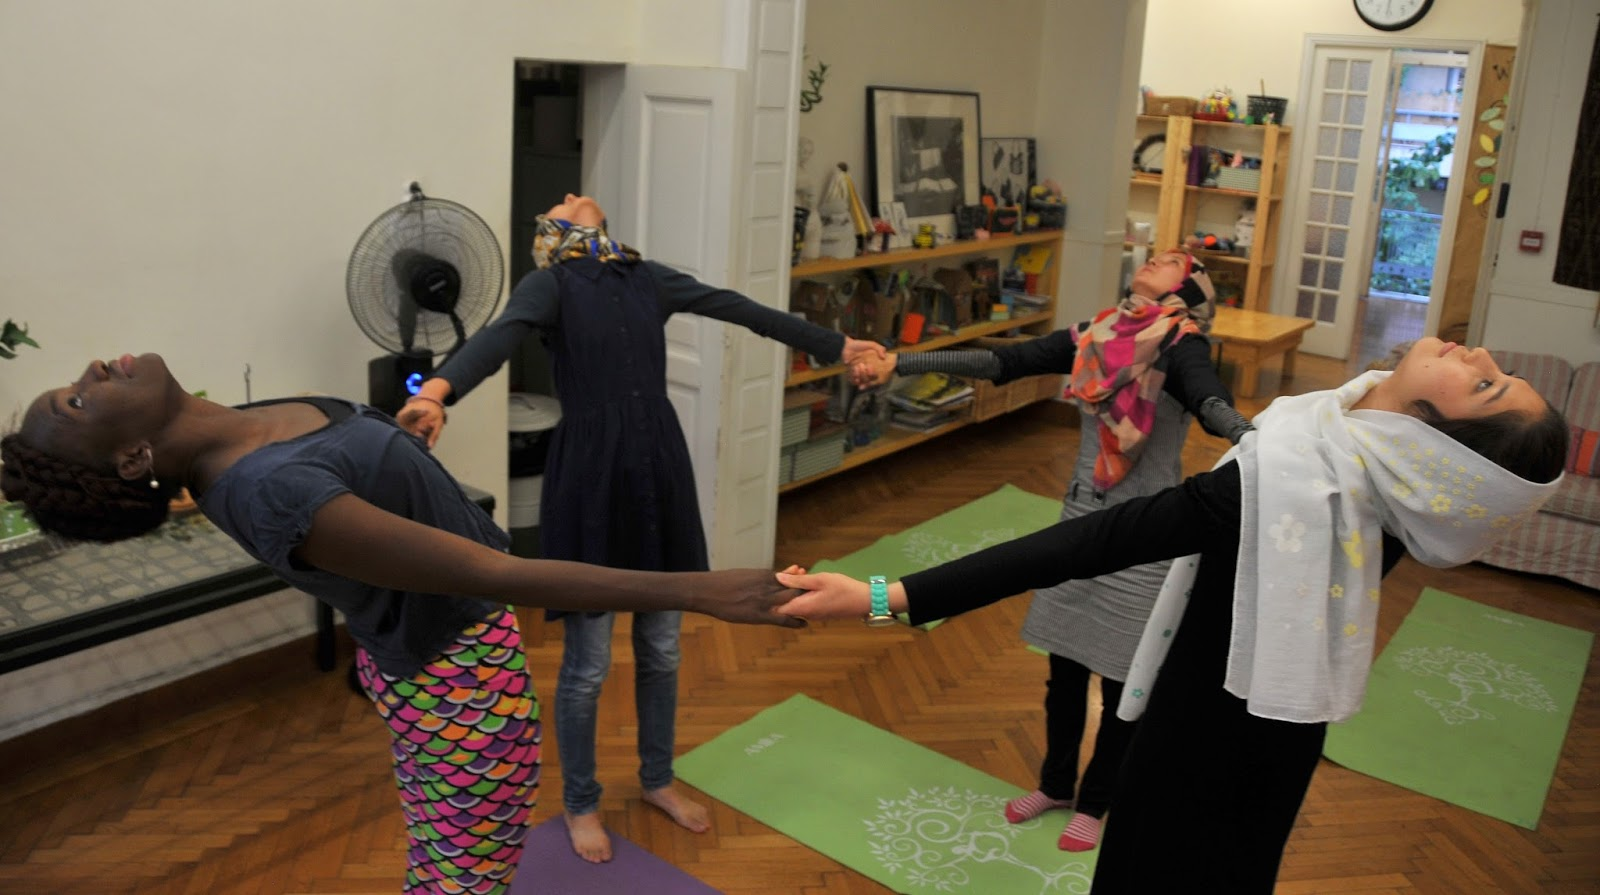 The Role Of Yoga In Healing Trauma >> Warrior Women Yoga For Healing Trauma And Survival Adeola Aderemi